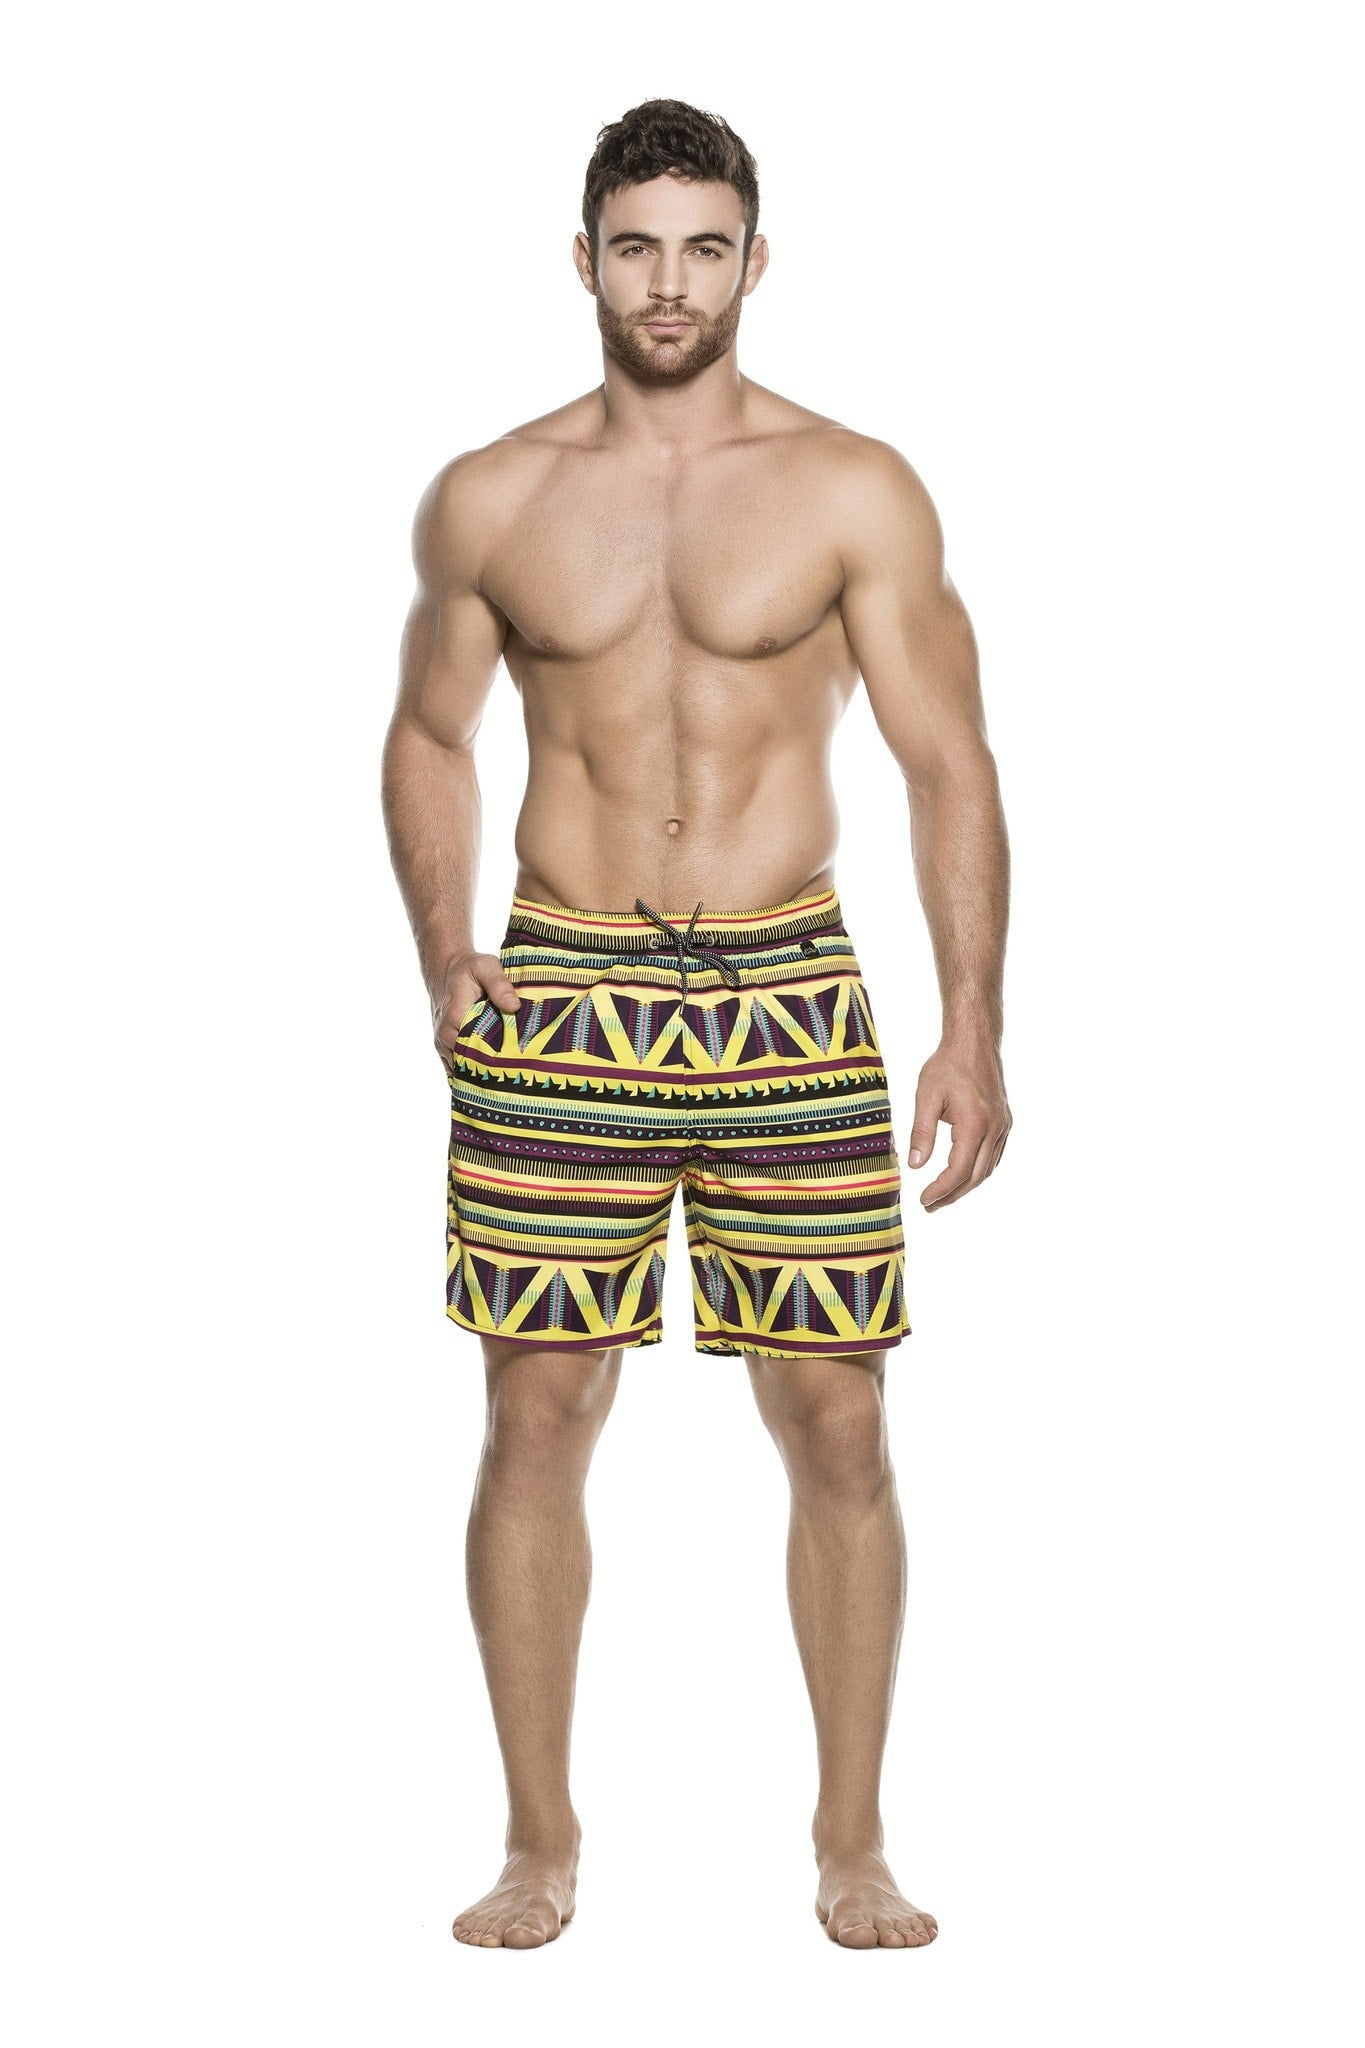 Find great deals on eBay for designer mens shorts. Shop with confidence.